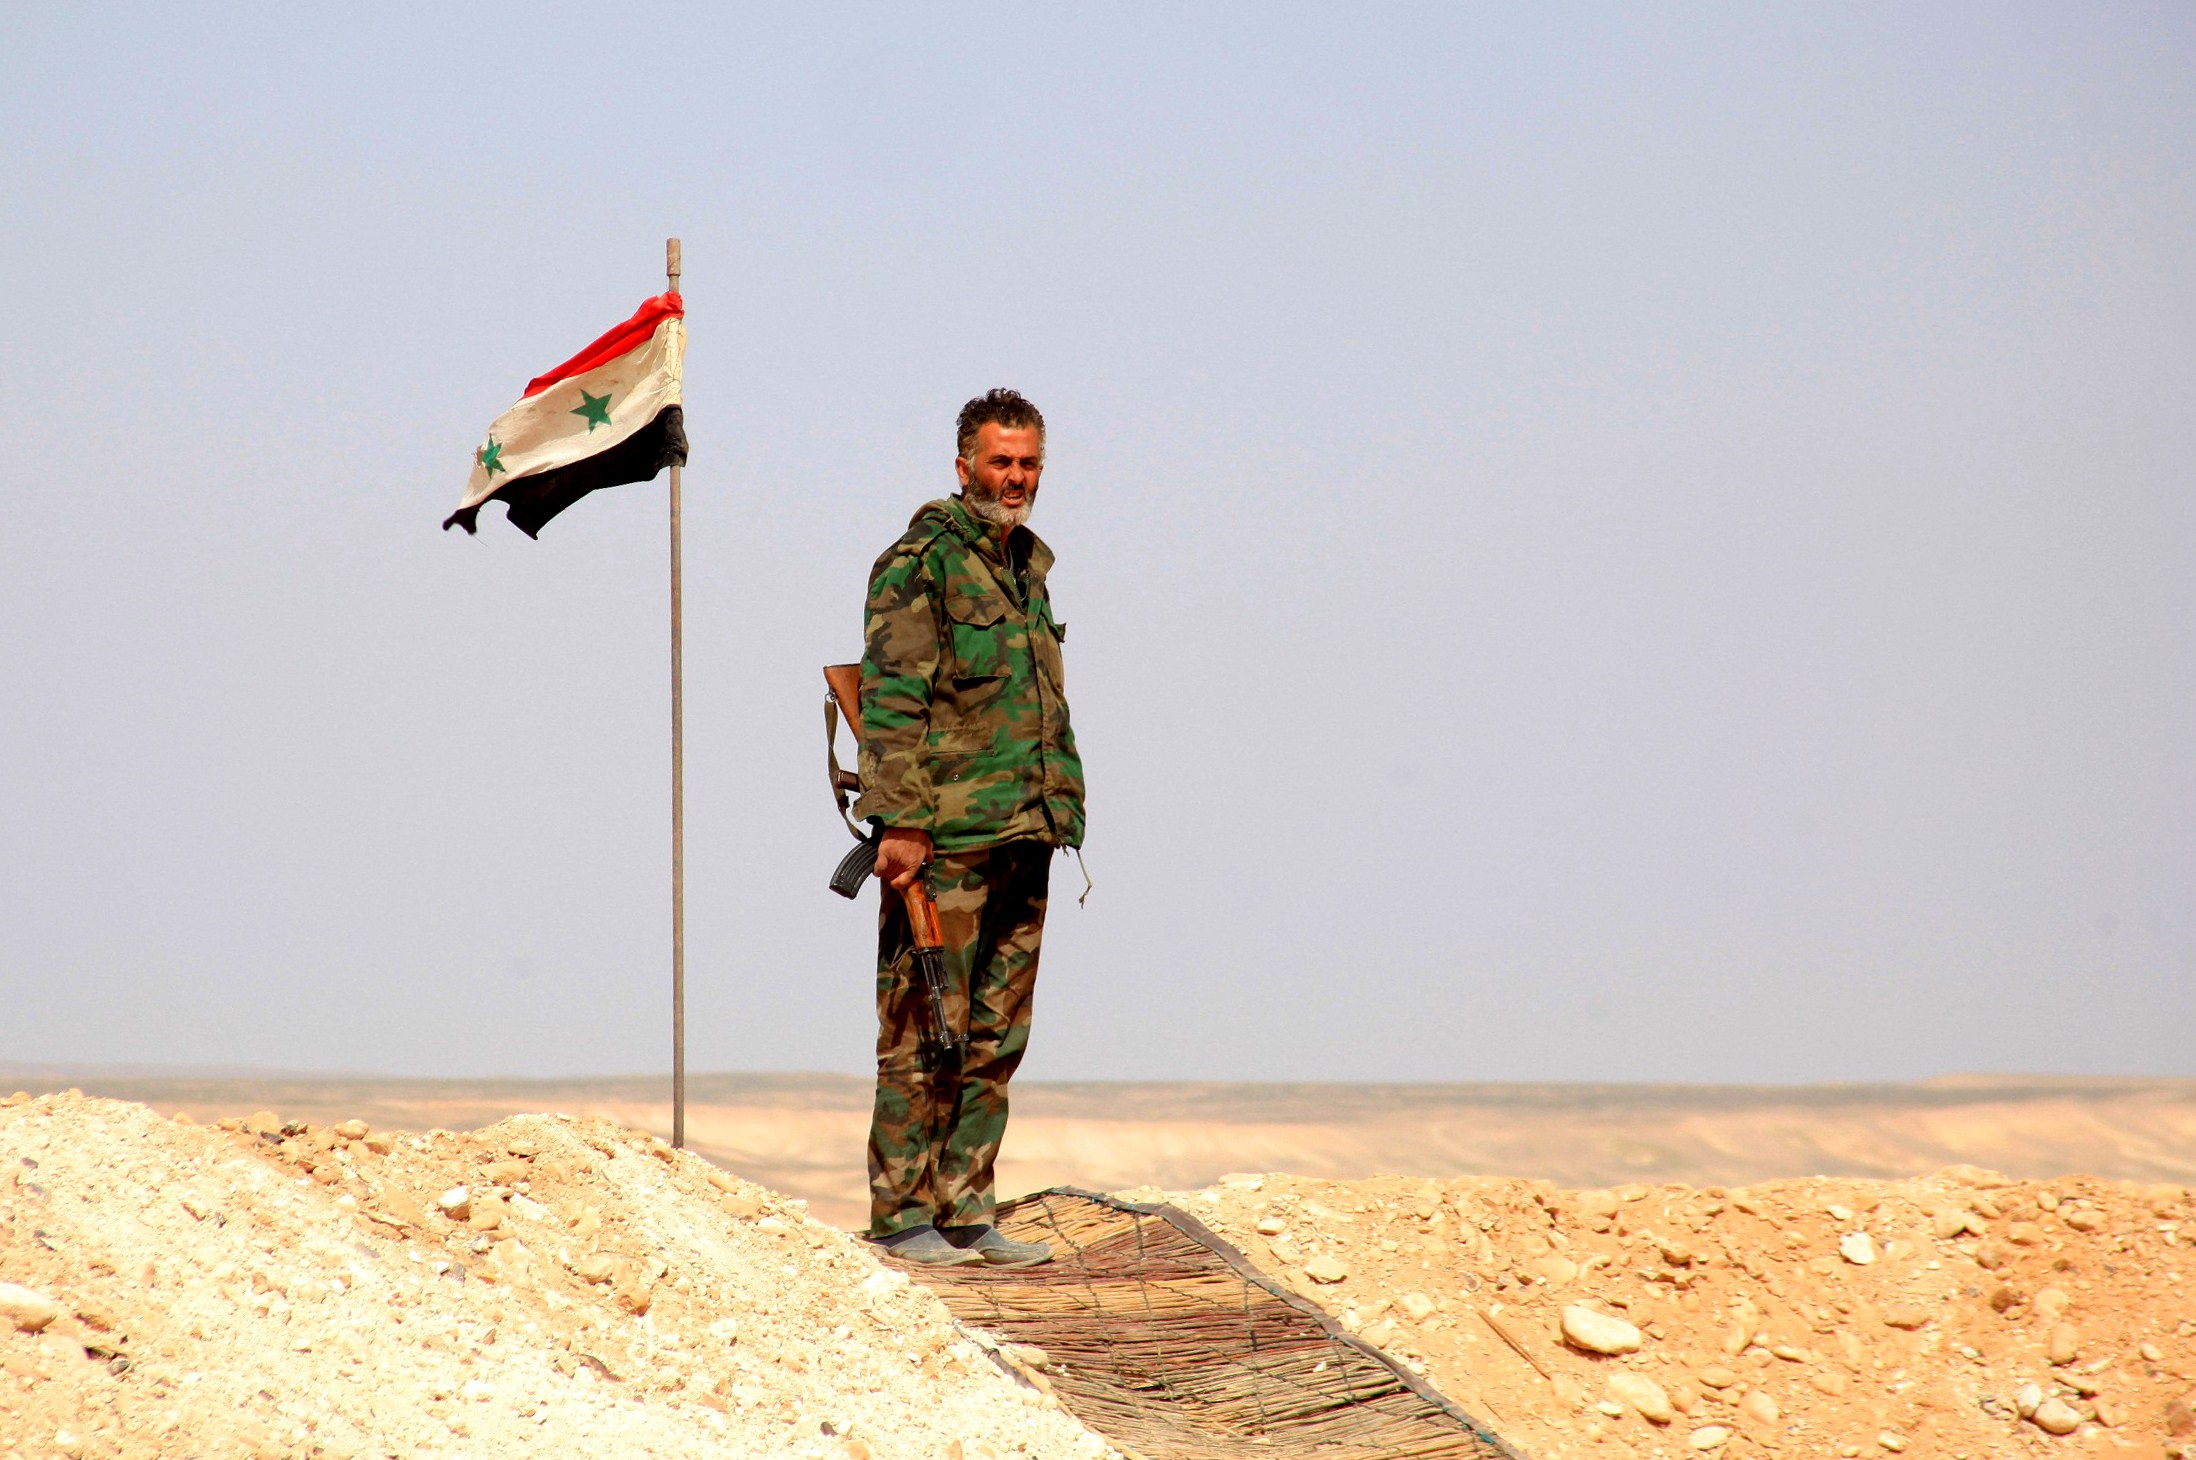 Lives, culture at stake as ISIS claims 2nd key victory